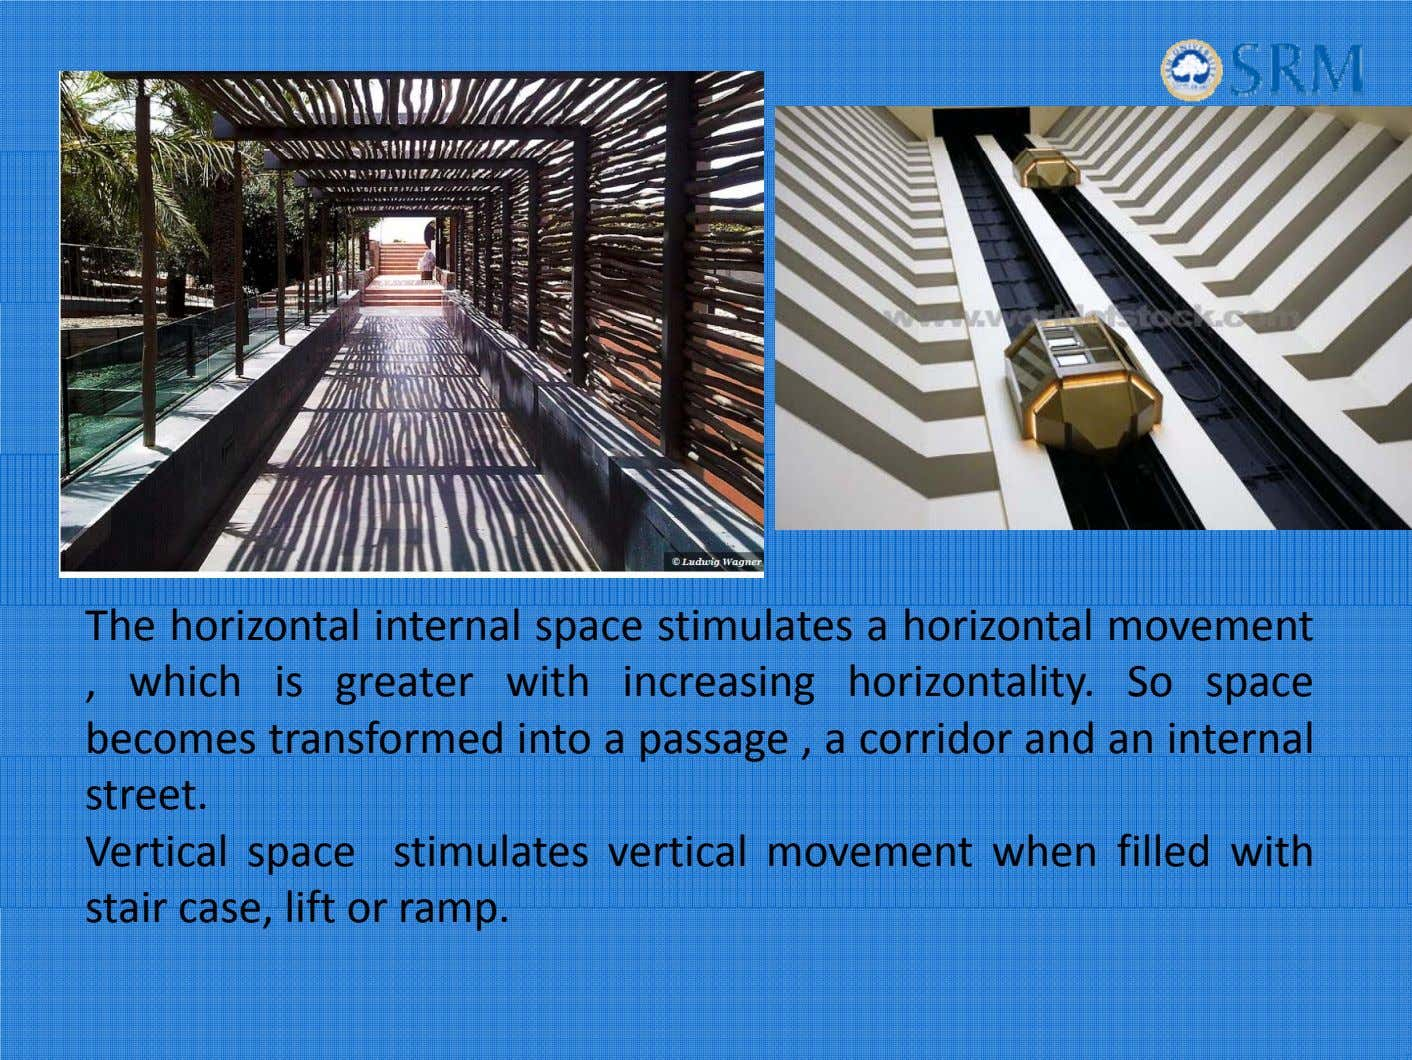 The horizontal internal space stimulates a horizontal movement , which is greater with increasing horizontality.